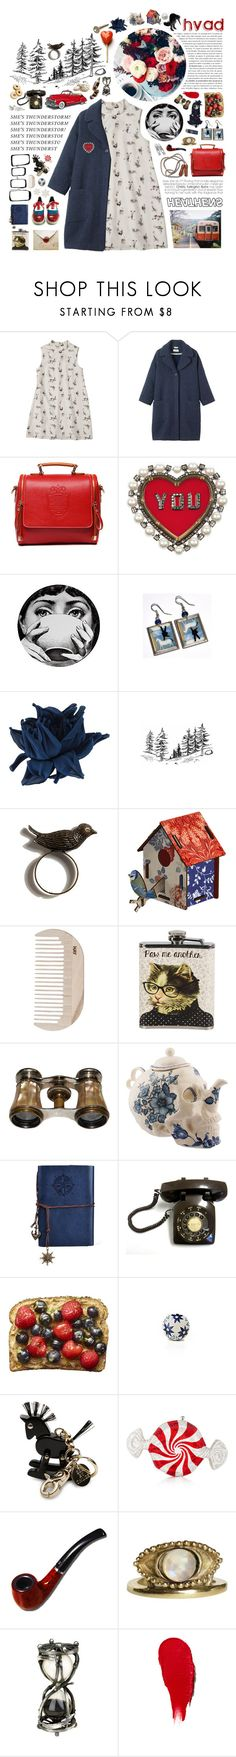 """""""Lakeside Ladies Knitting Circle"""" by distantfirewaves ❤ liked on Polyvore featuring Toast, Lanvin, Robert Clergerie, Fornasetti, Erika Cavallini Semi-Couture, MIHO, HAY, See by Chloé, Judith Leiber and Rodin"""